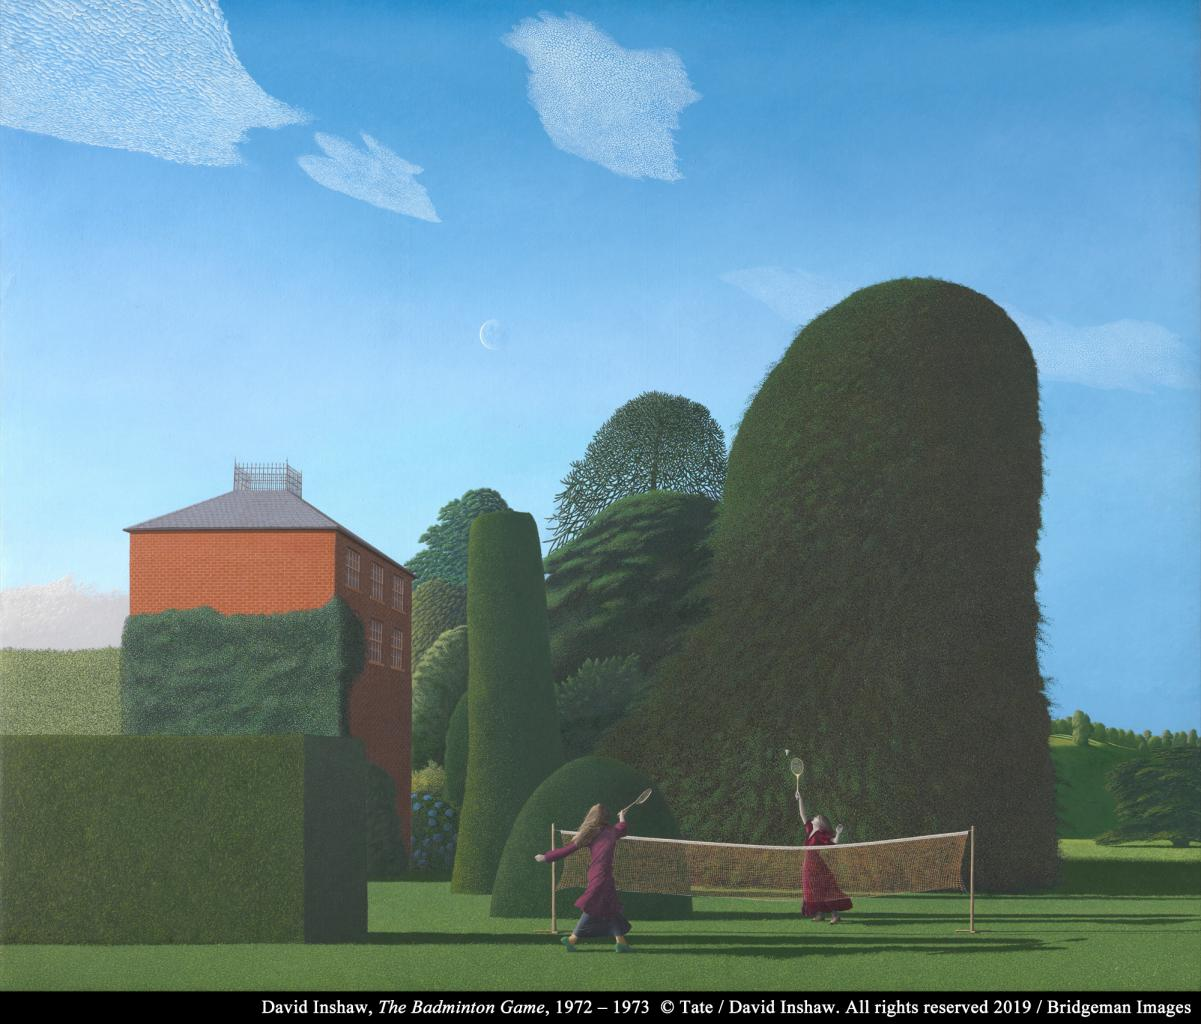 David Inshaw, 'The Badminton Game' image